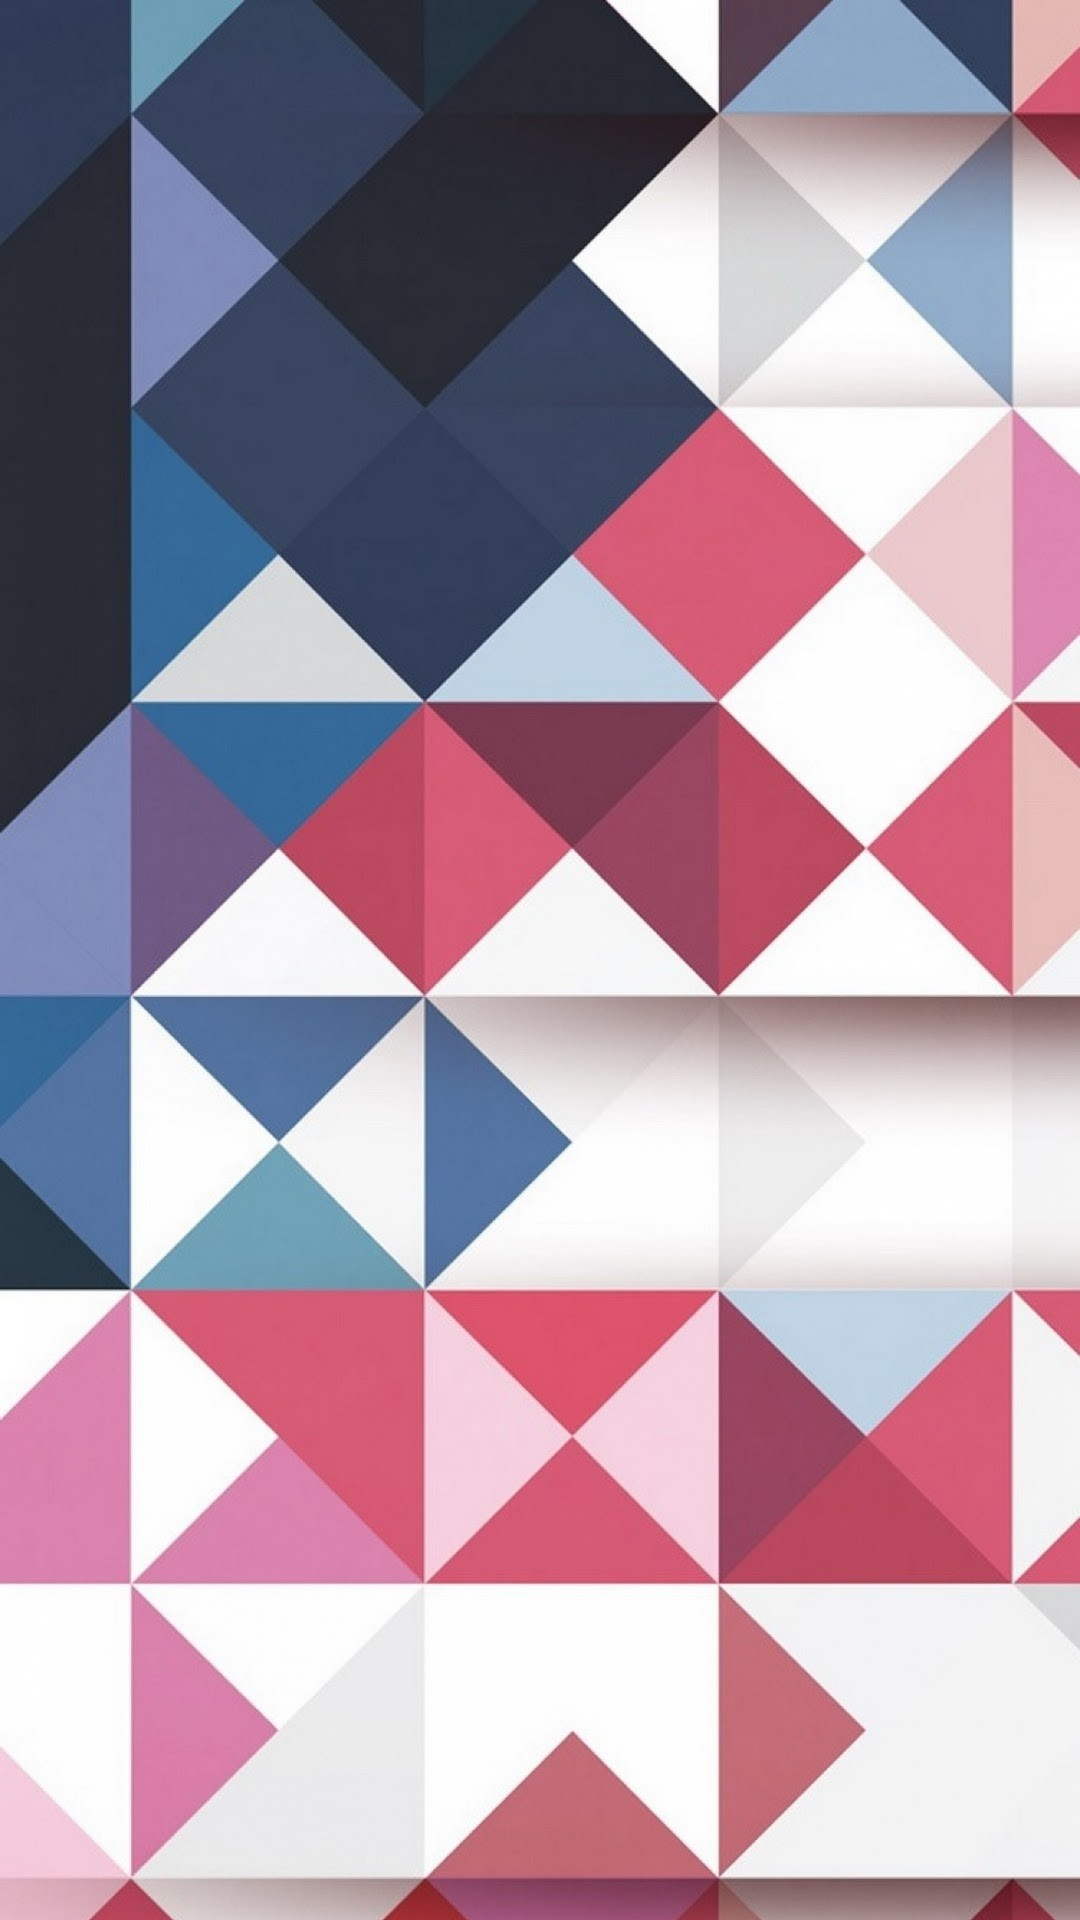 Geometric wallpaper for android